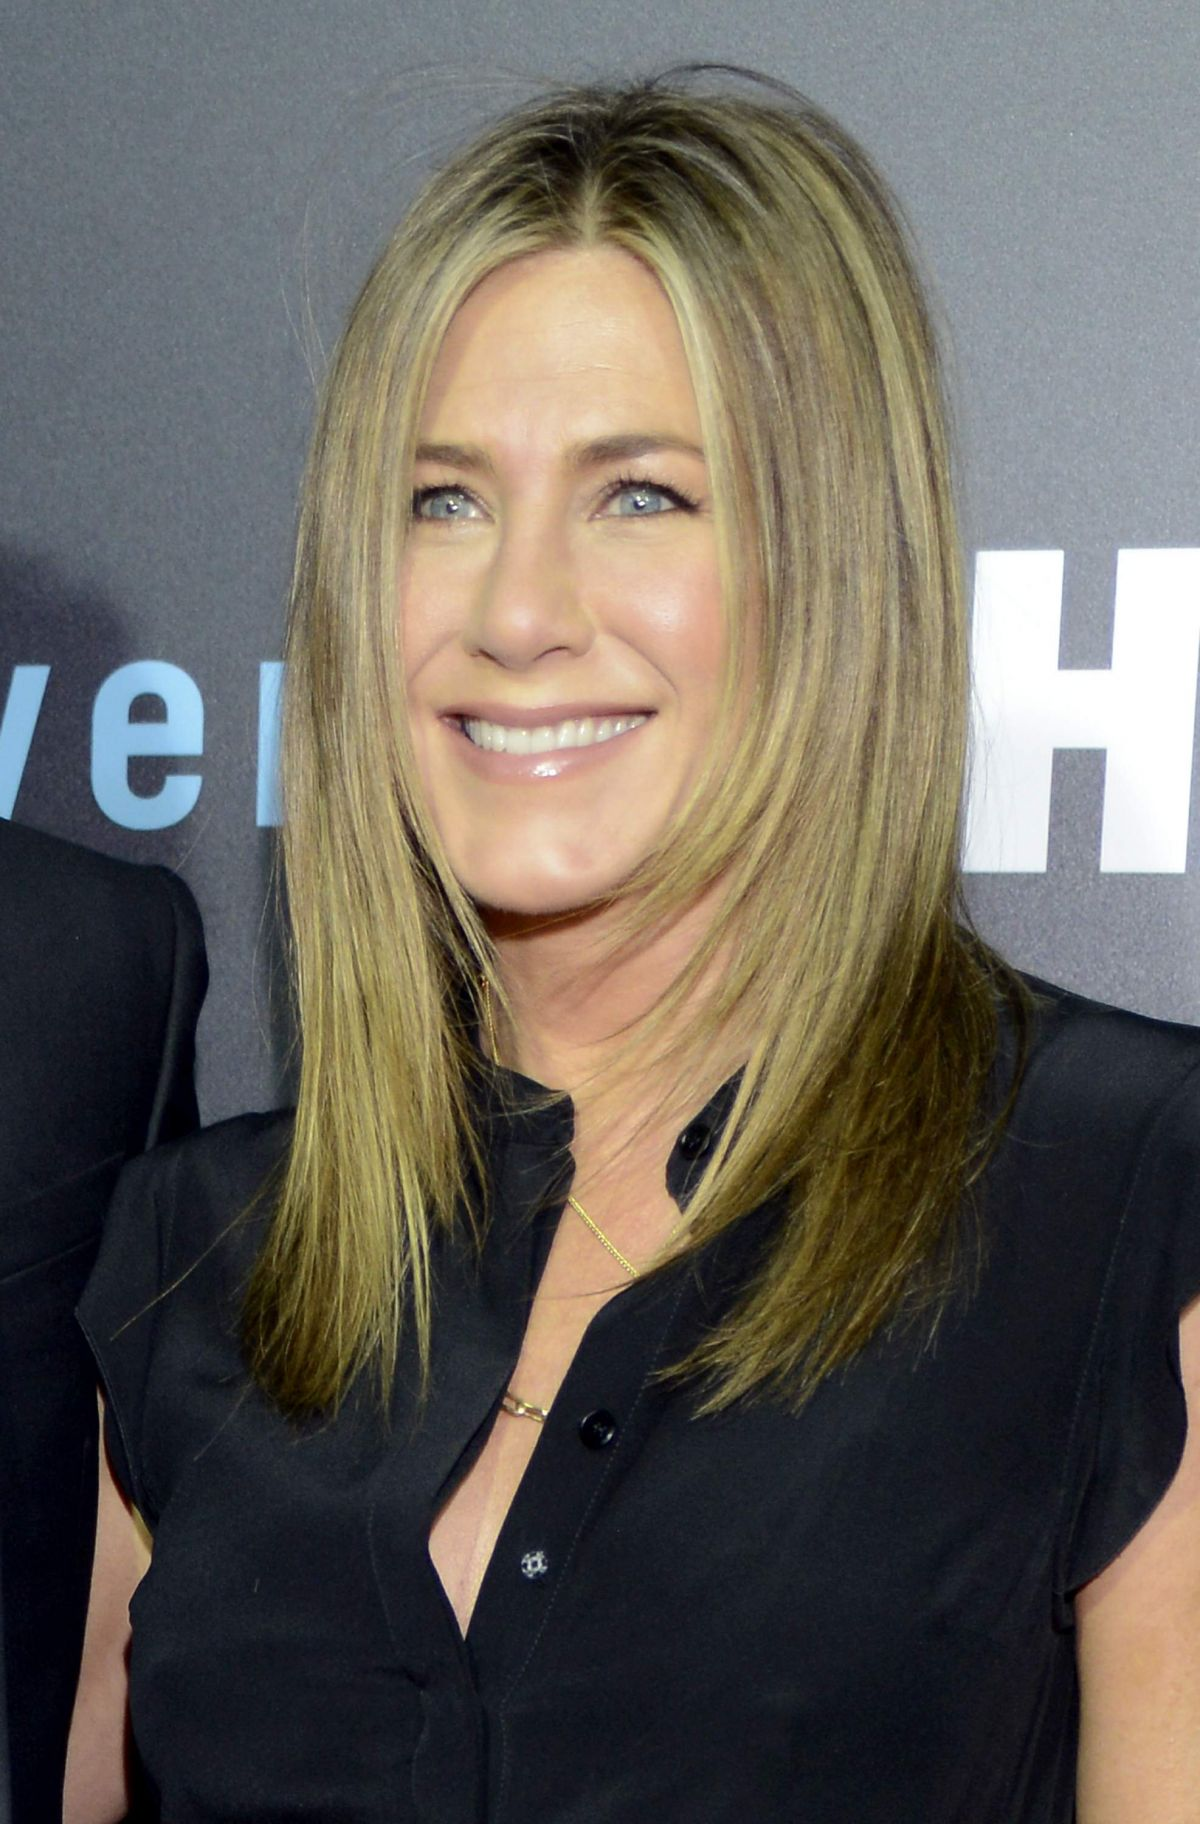 Jennifer Aniston At The Leftovers Season 2 Premiere In